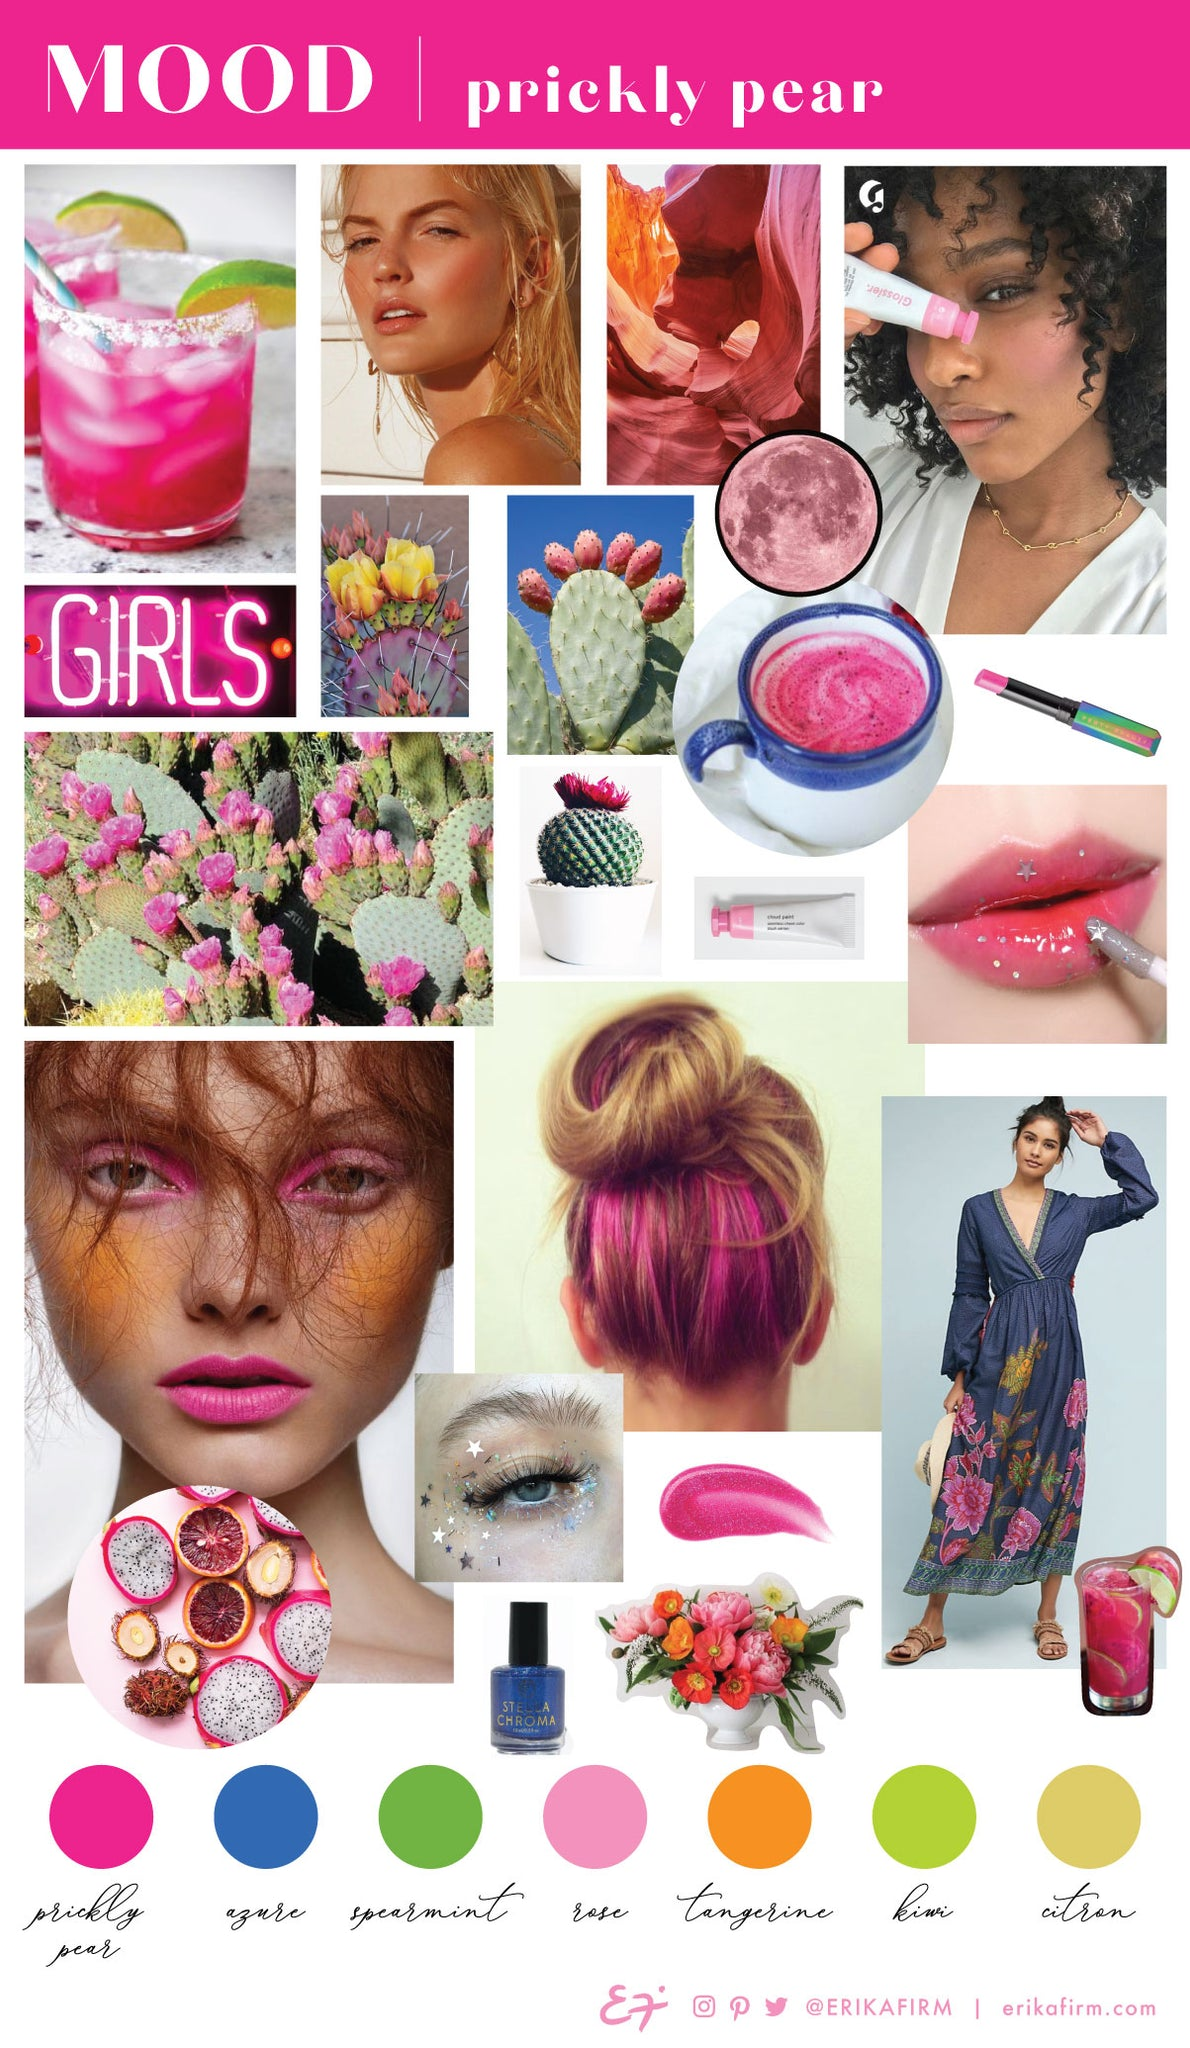 Prickly Pear Mood Board by Erika Firm